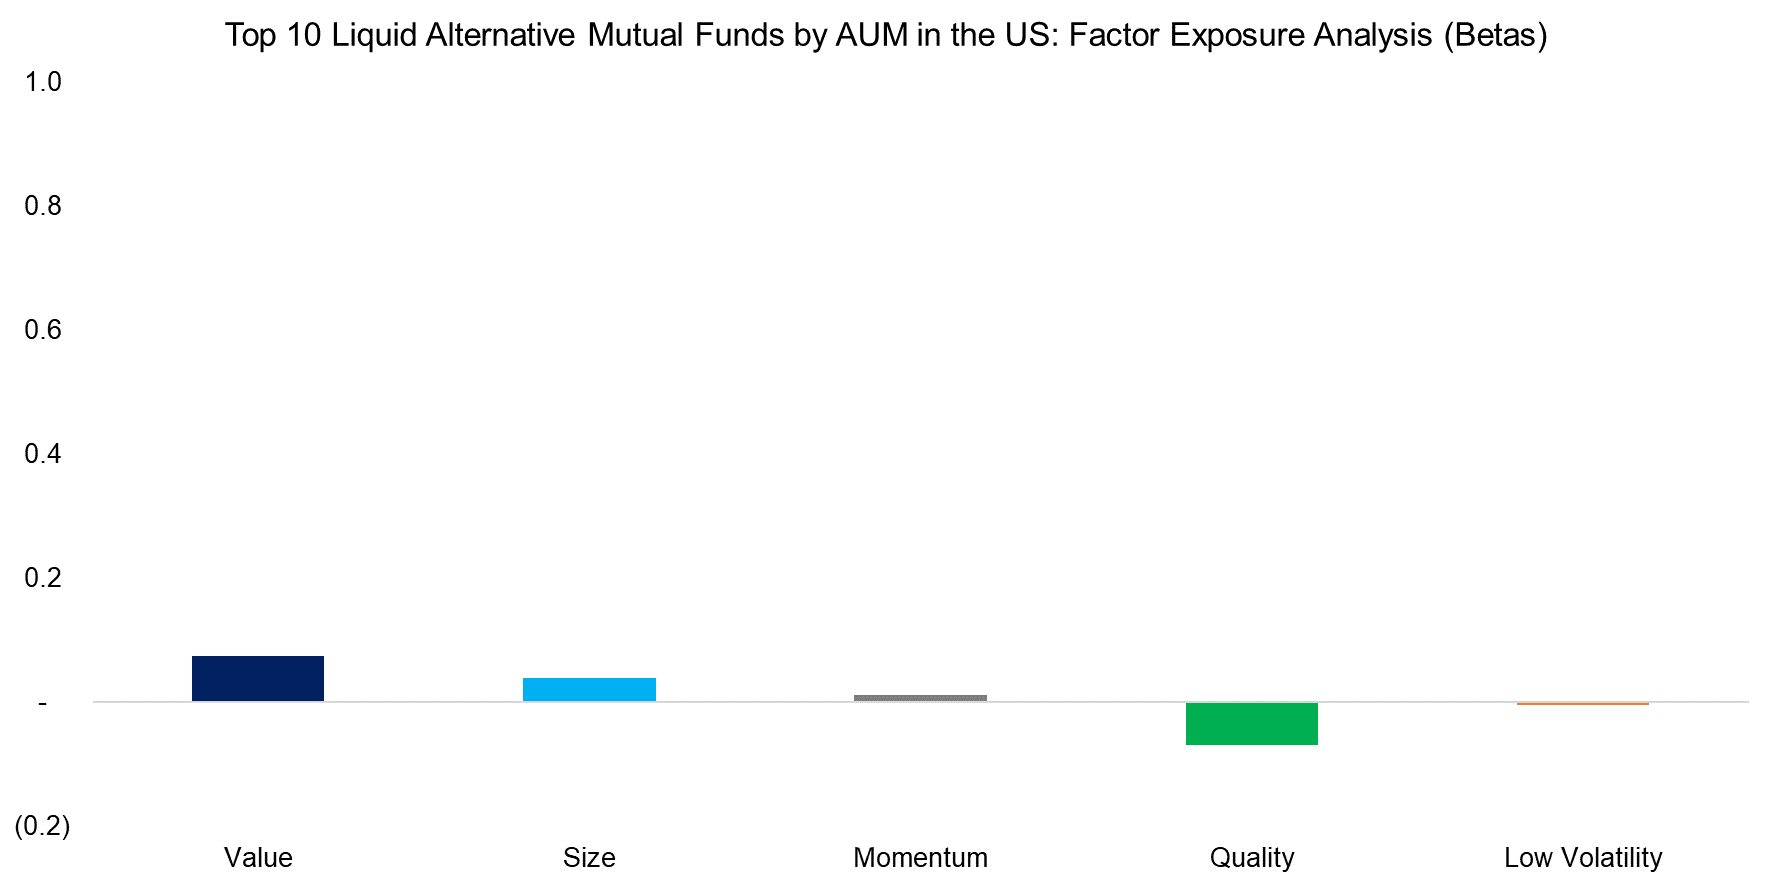 Top 10 Liquid Alternative Mutual Funds by AUM in the US Factor Exposure Analysis (Betas)